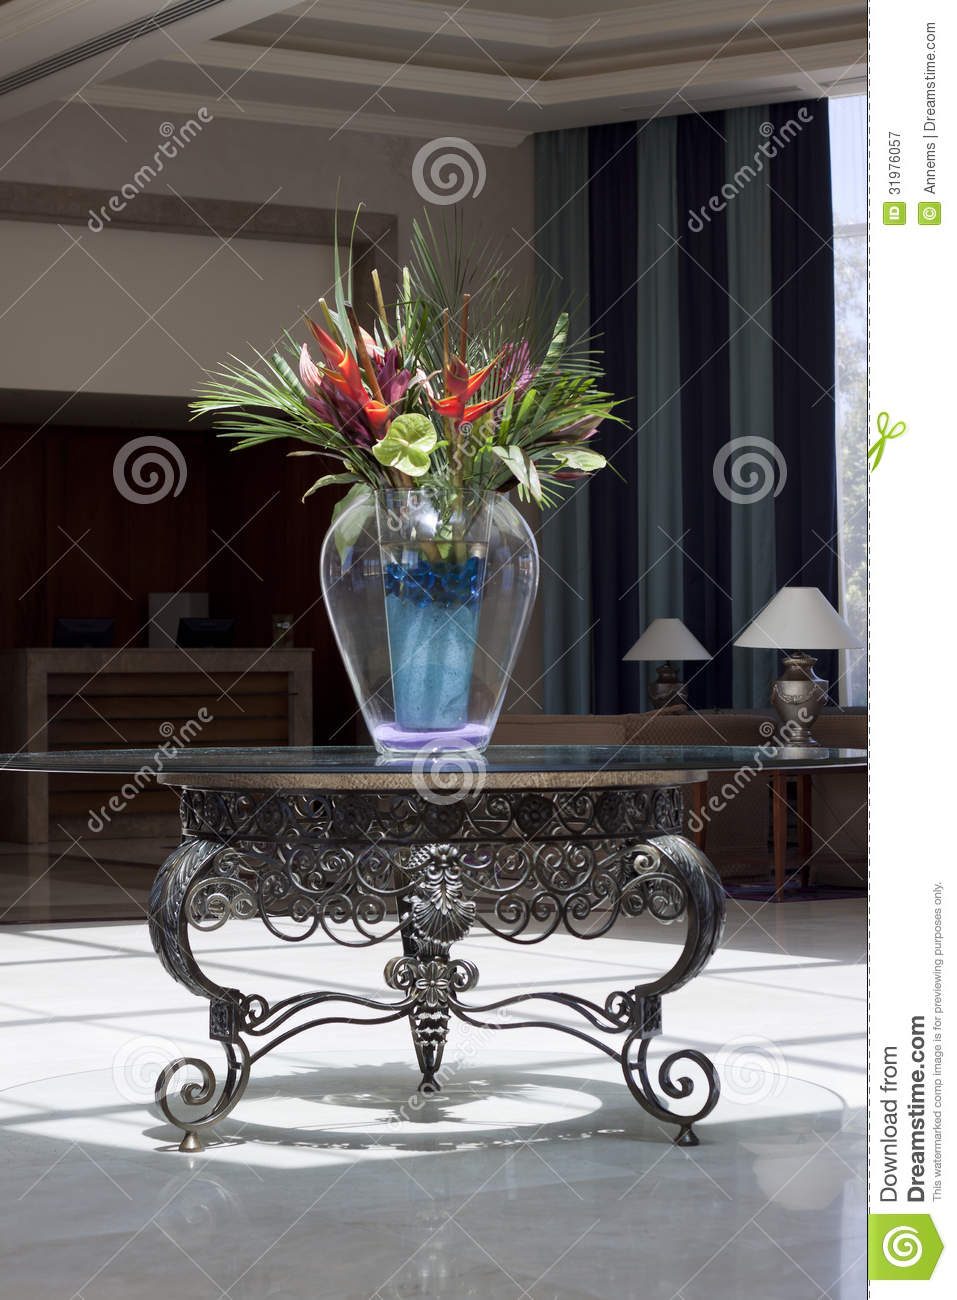 Hotel lobby royalty free stock photography image 31976057 for Bouquet hotel